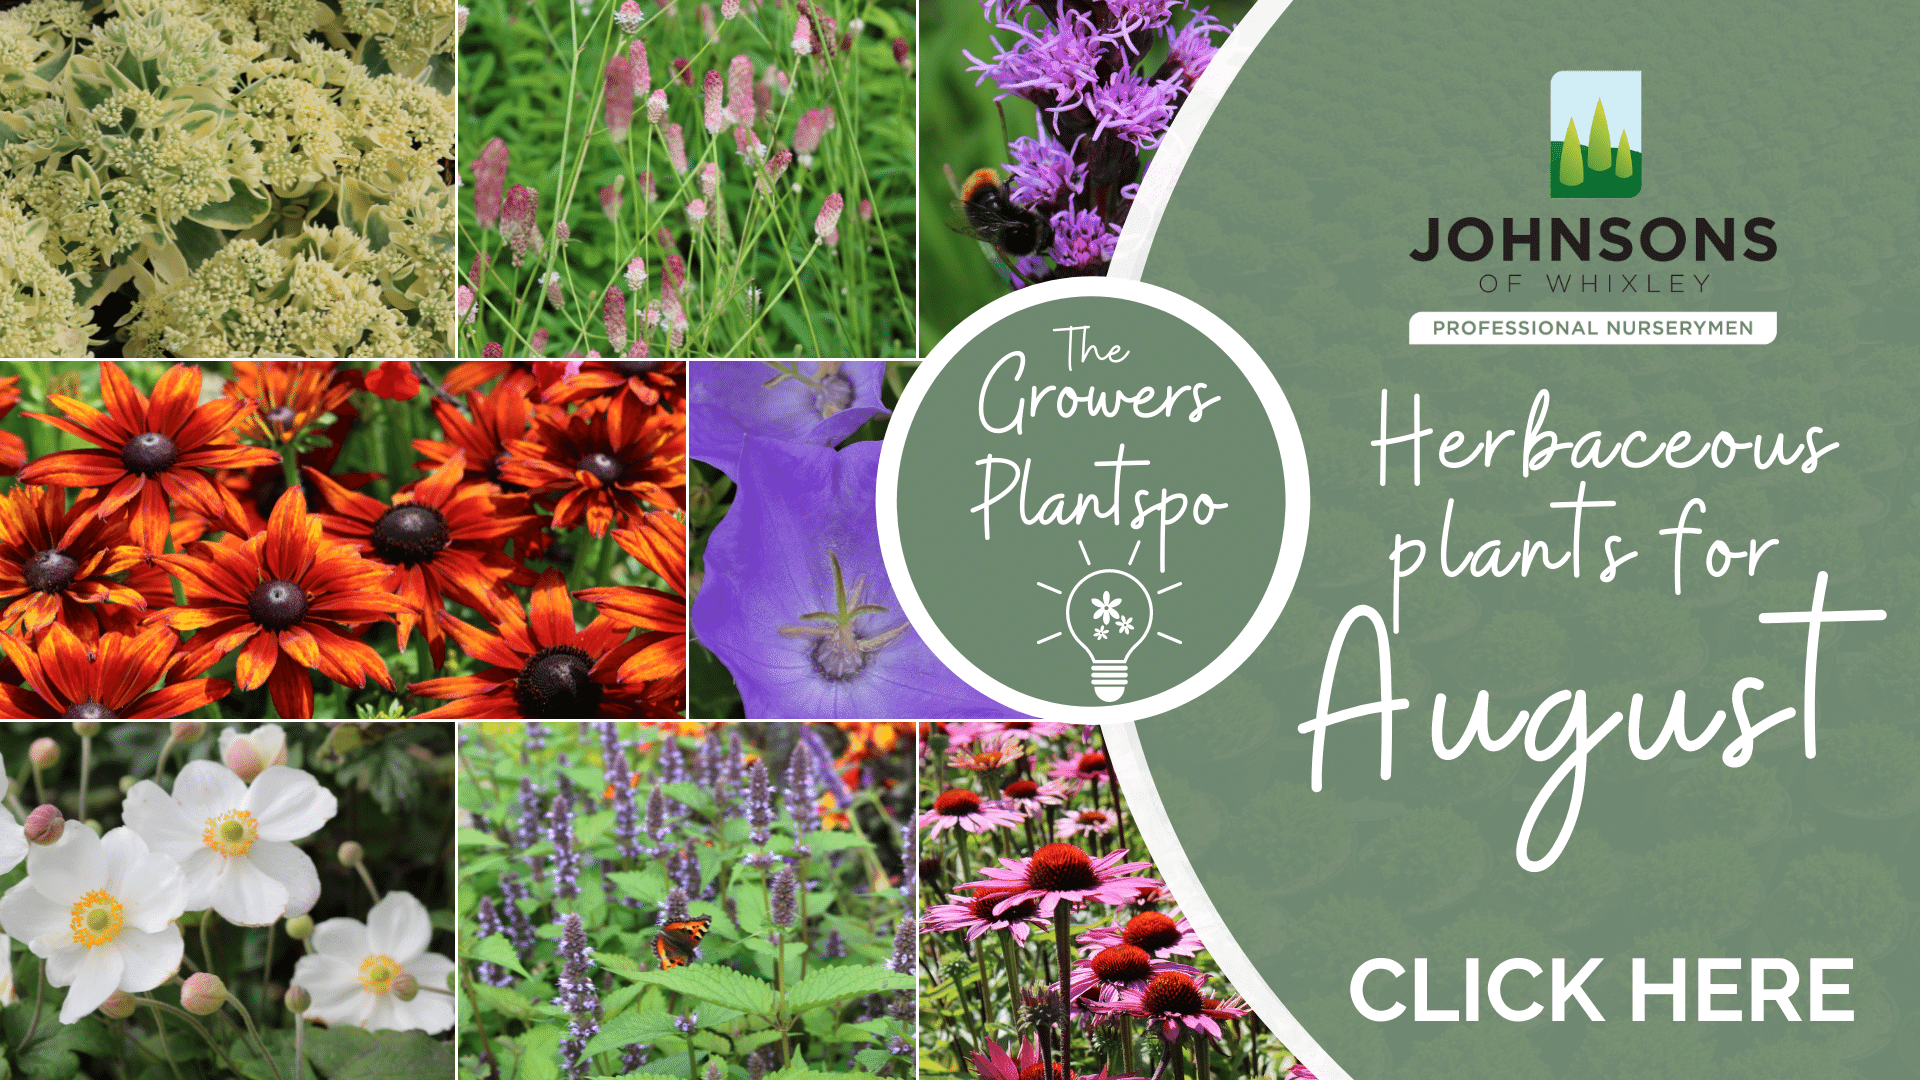 The Growers Plantspo - August Herbaceous